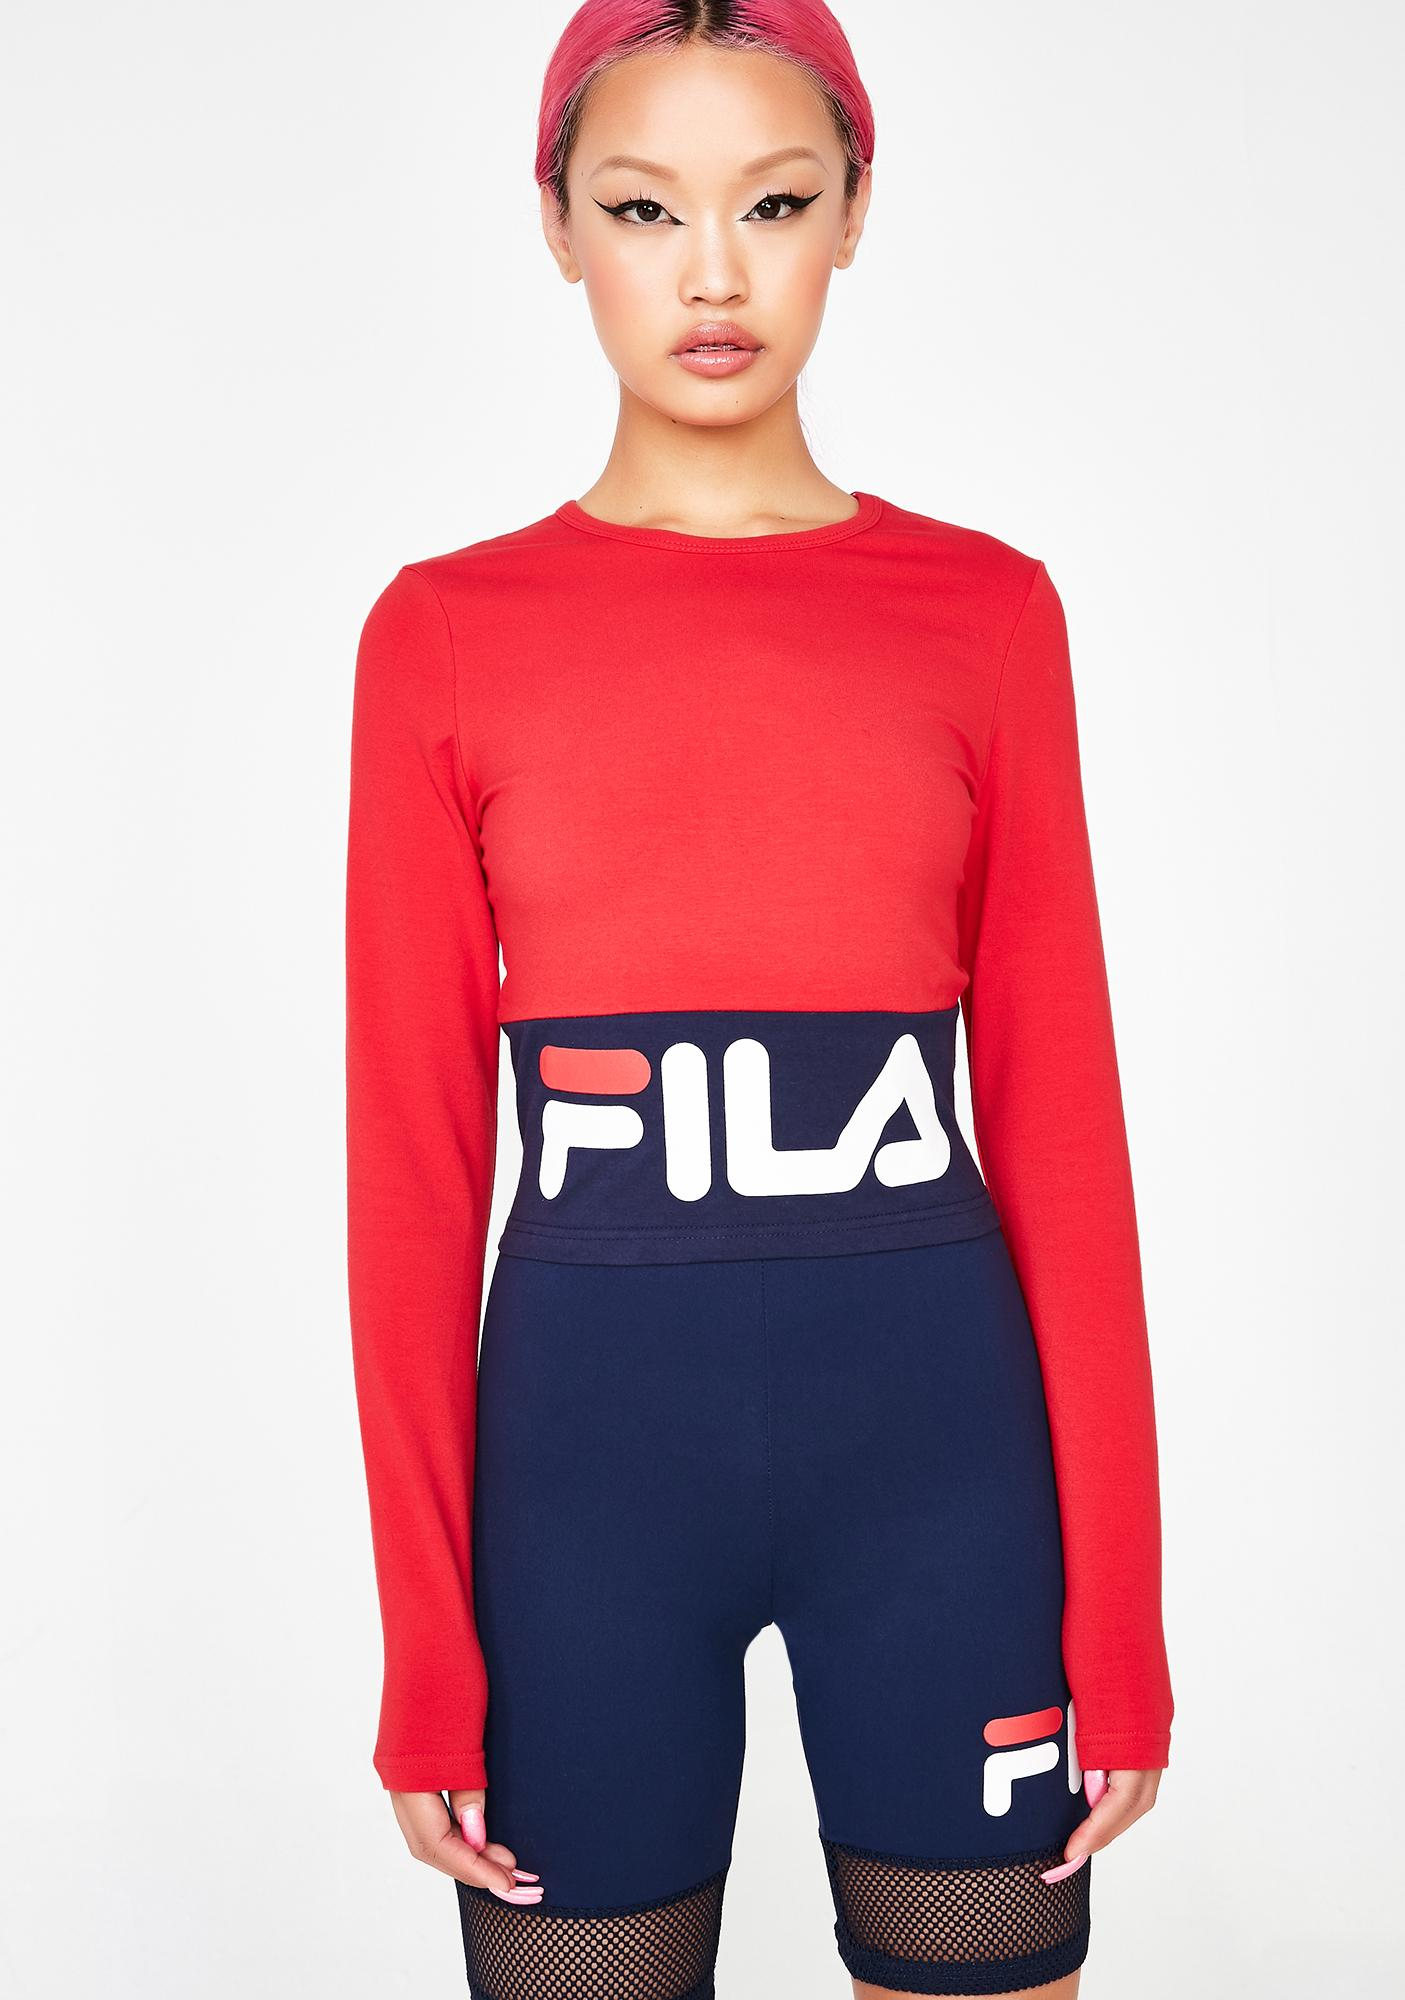 Fila Maria Long Sleeve Crop Top